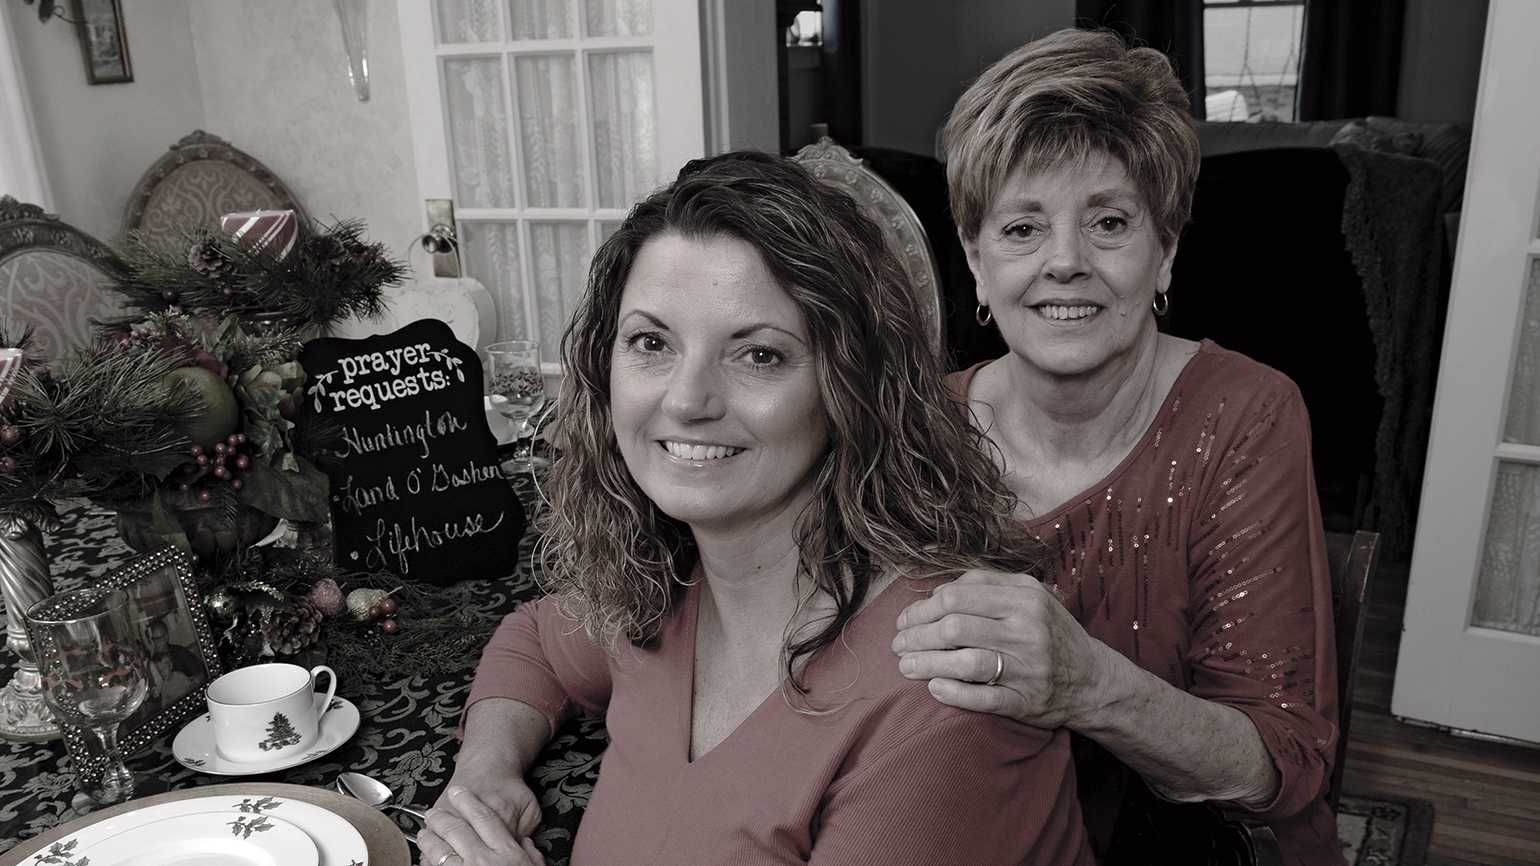 Joanna and her mother prepare a sober haven for the holidays.